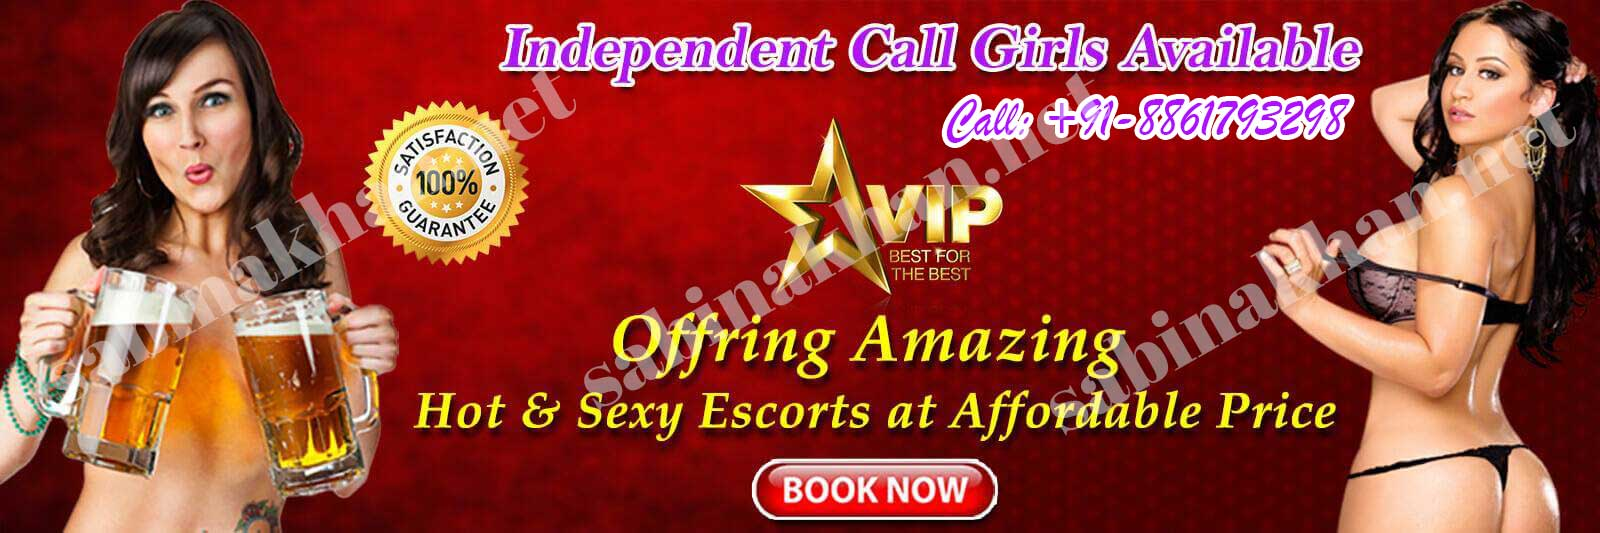 Call Girls Services chennai